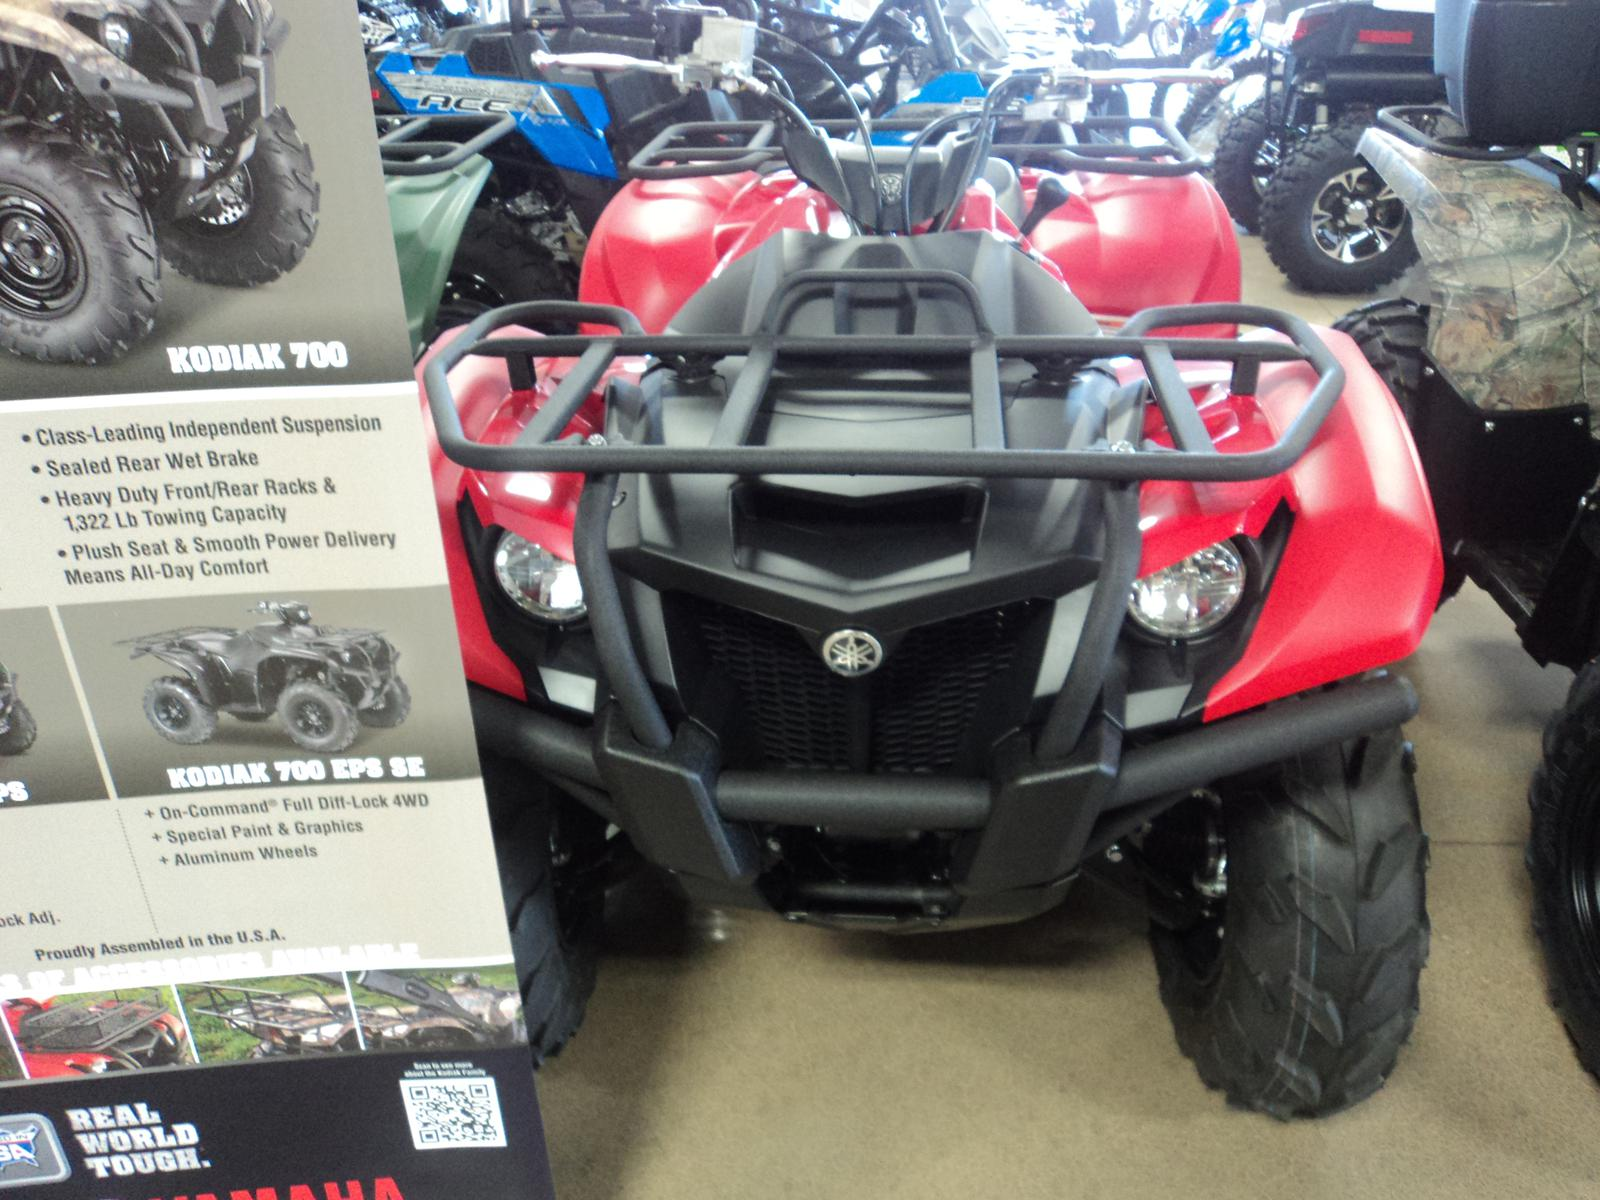 2016 Yamaha Grizzly 700, motorcycle listing